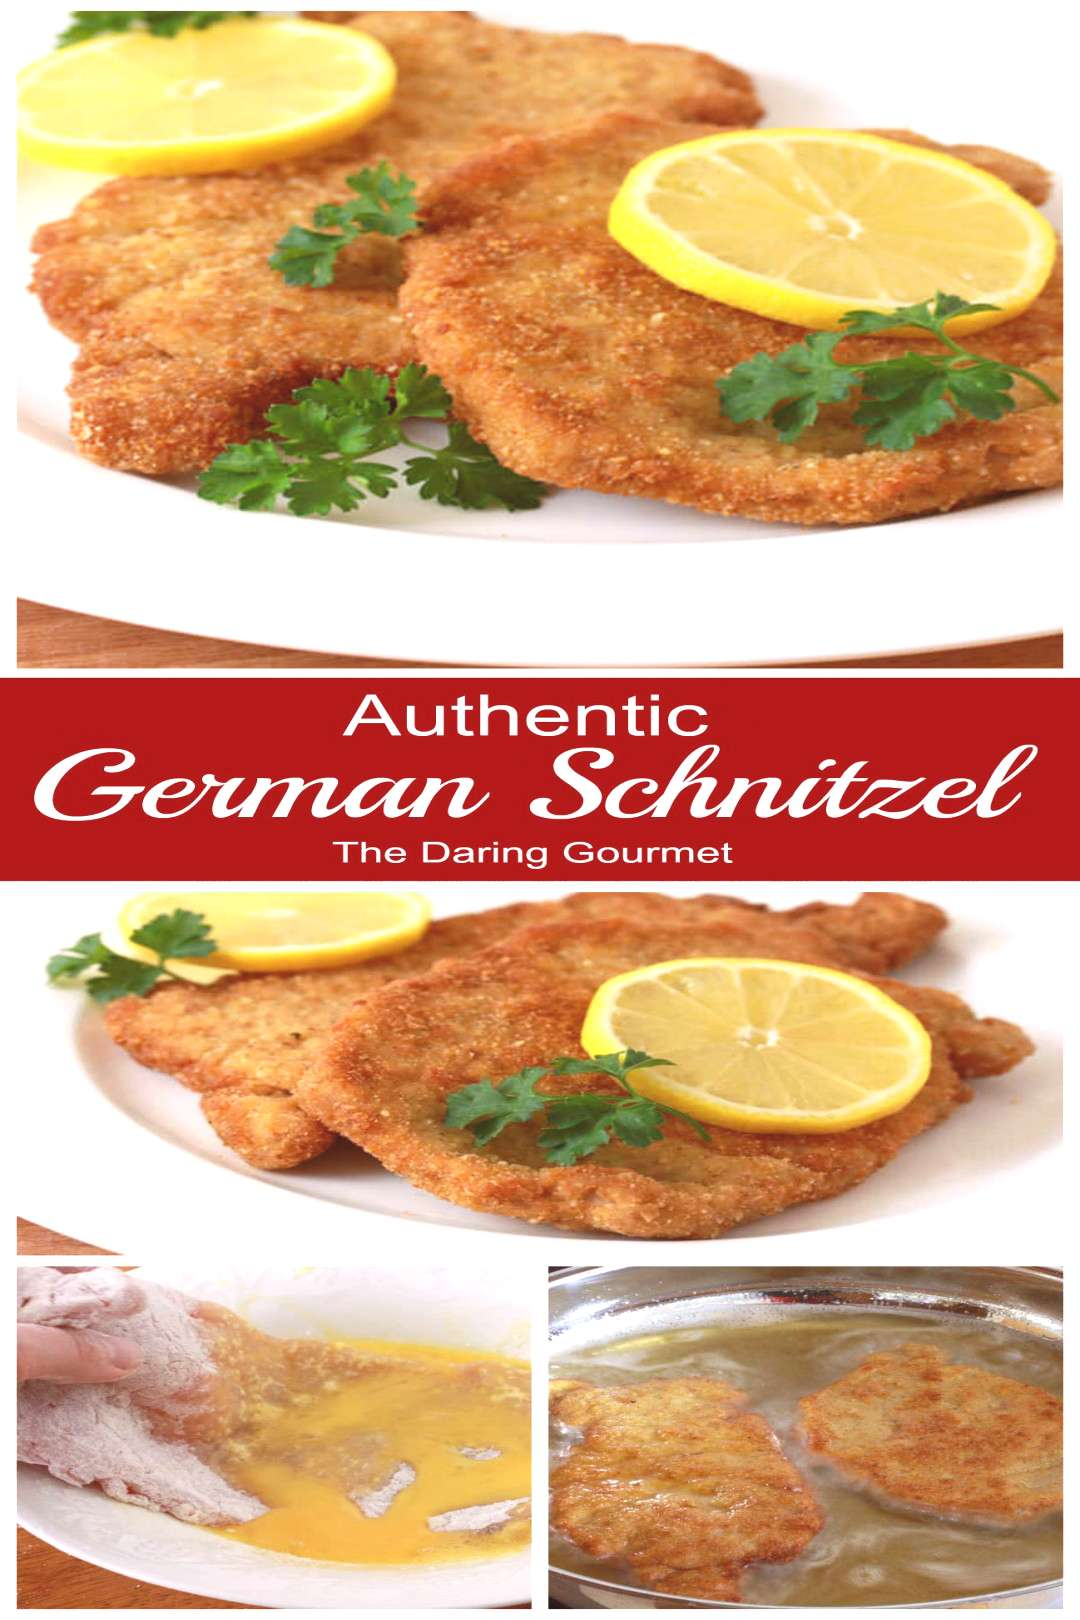 Authentic German Schnitzel Learn how to make Authentic German Pork Schnitzel the way your favorite